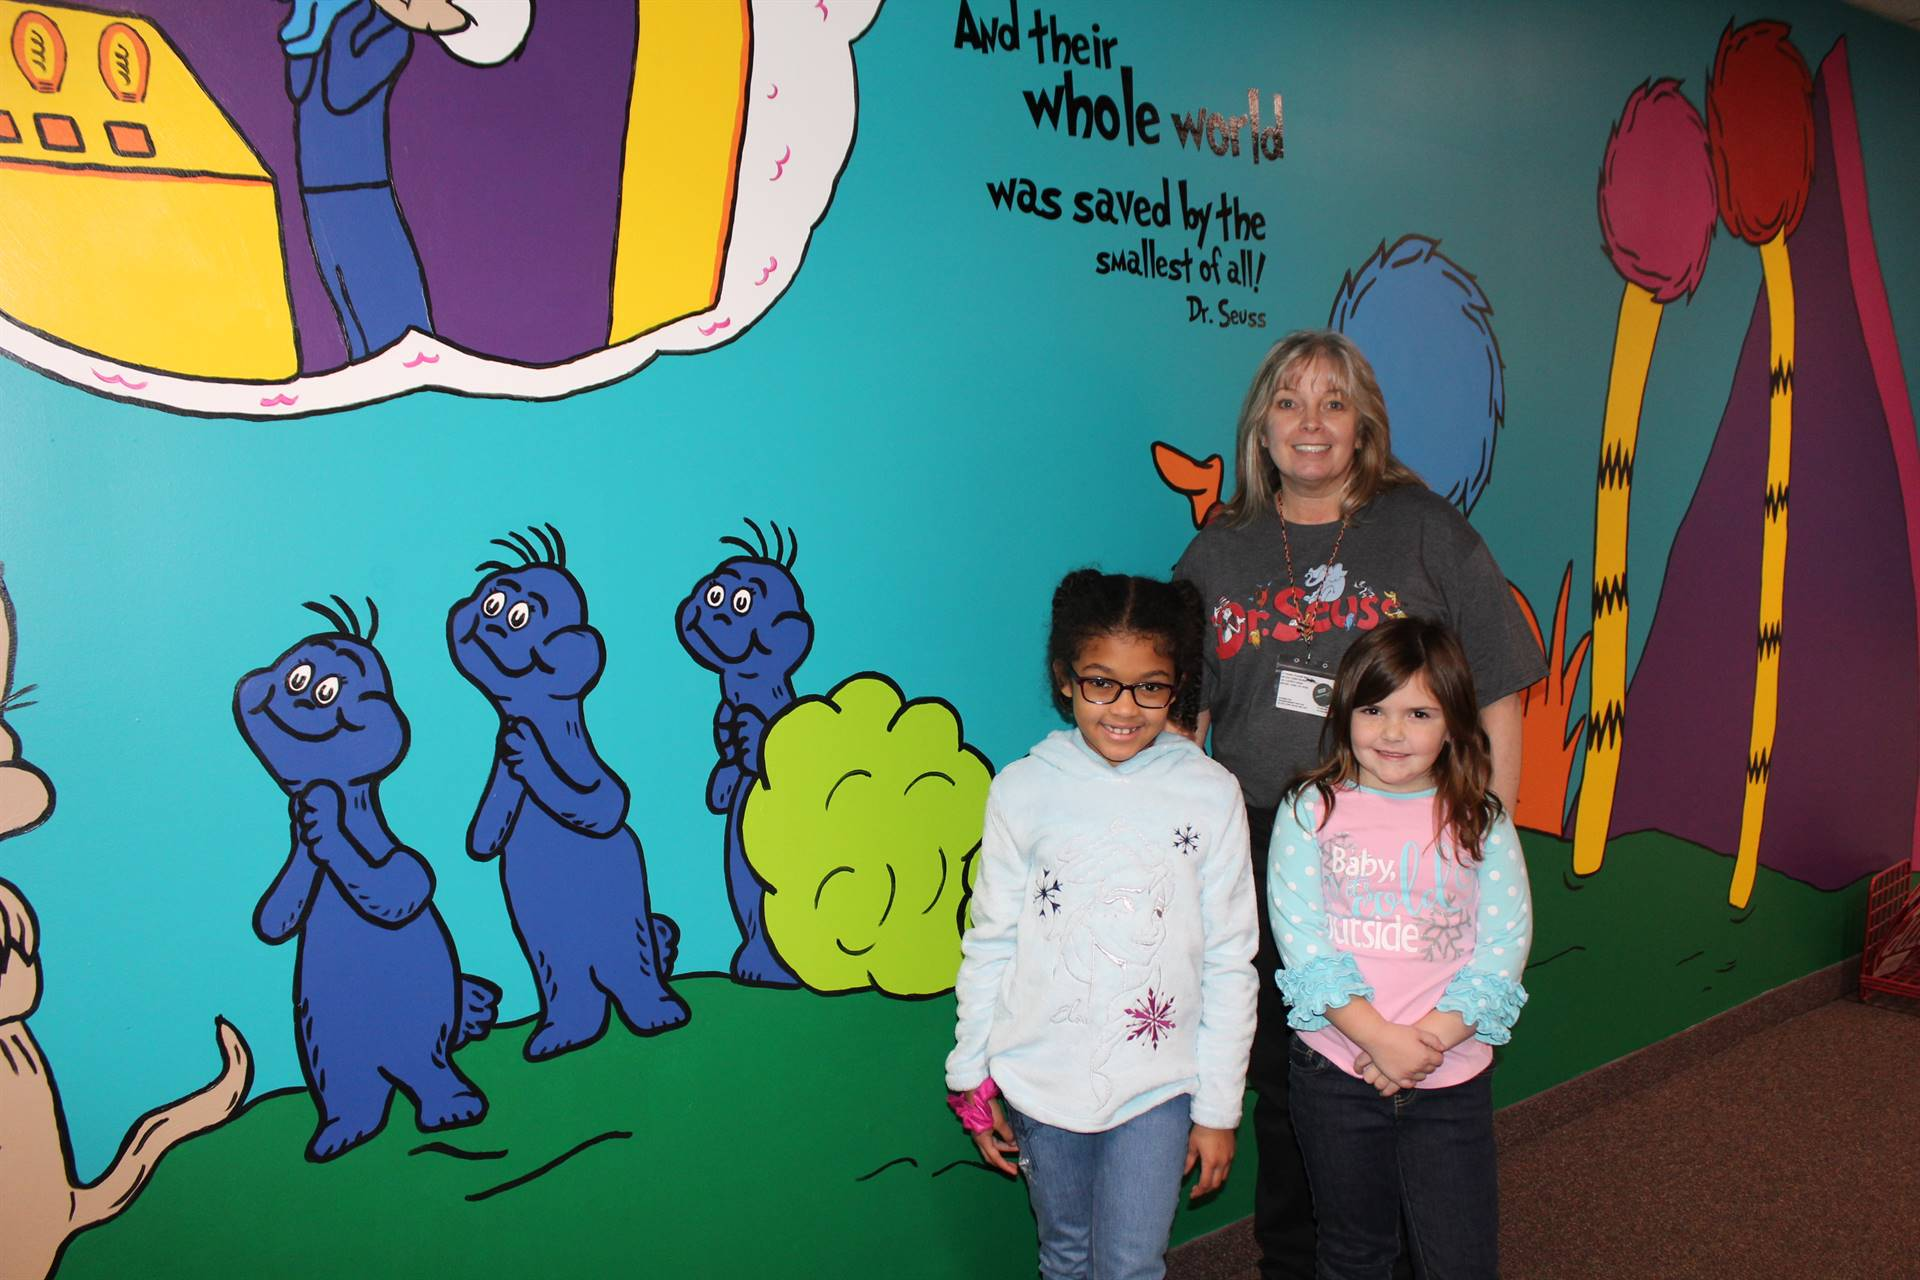 Mrs. Eckert-Graffam and two students in front of the new Dr. Seuss mural